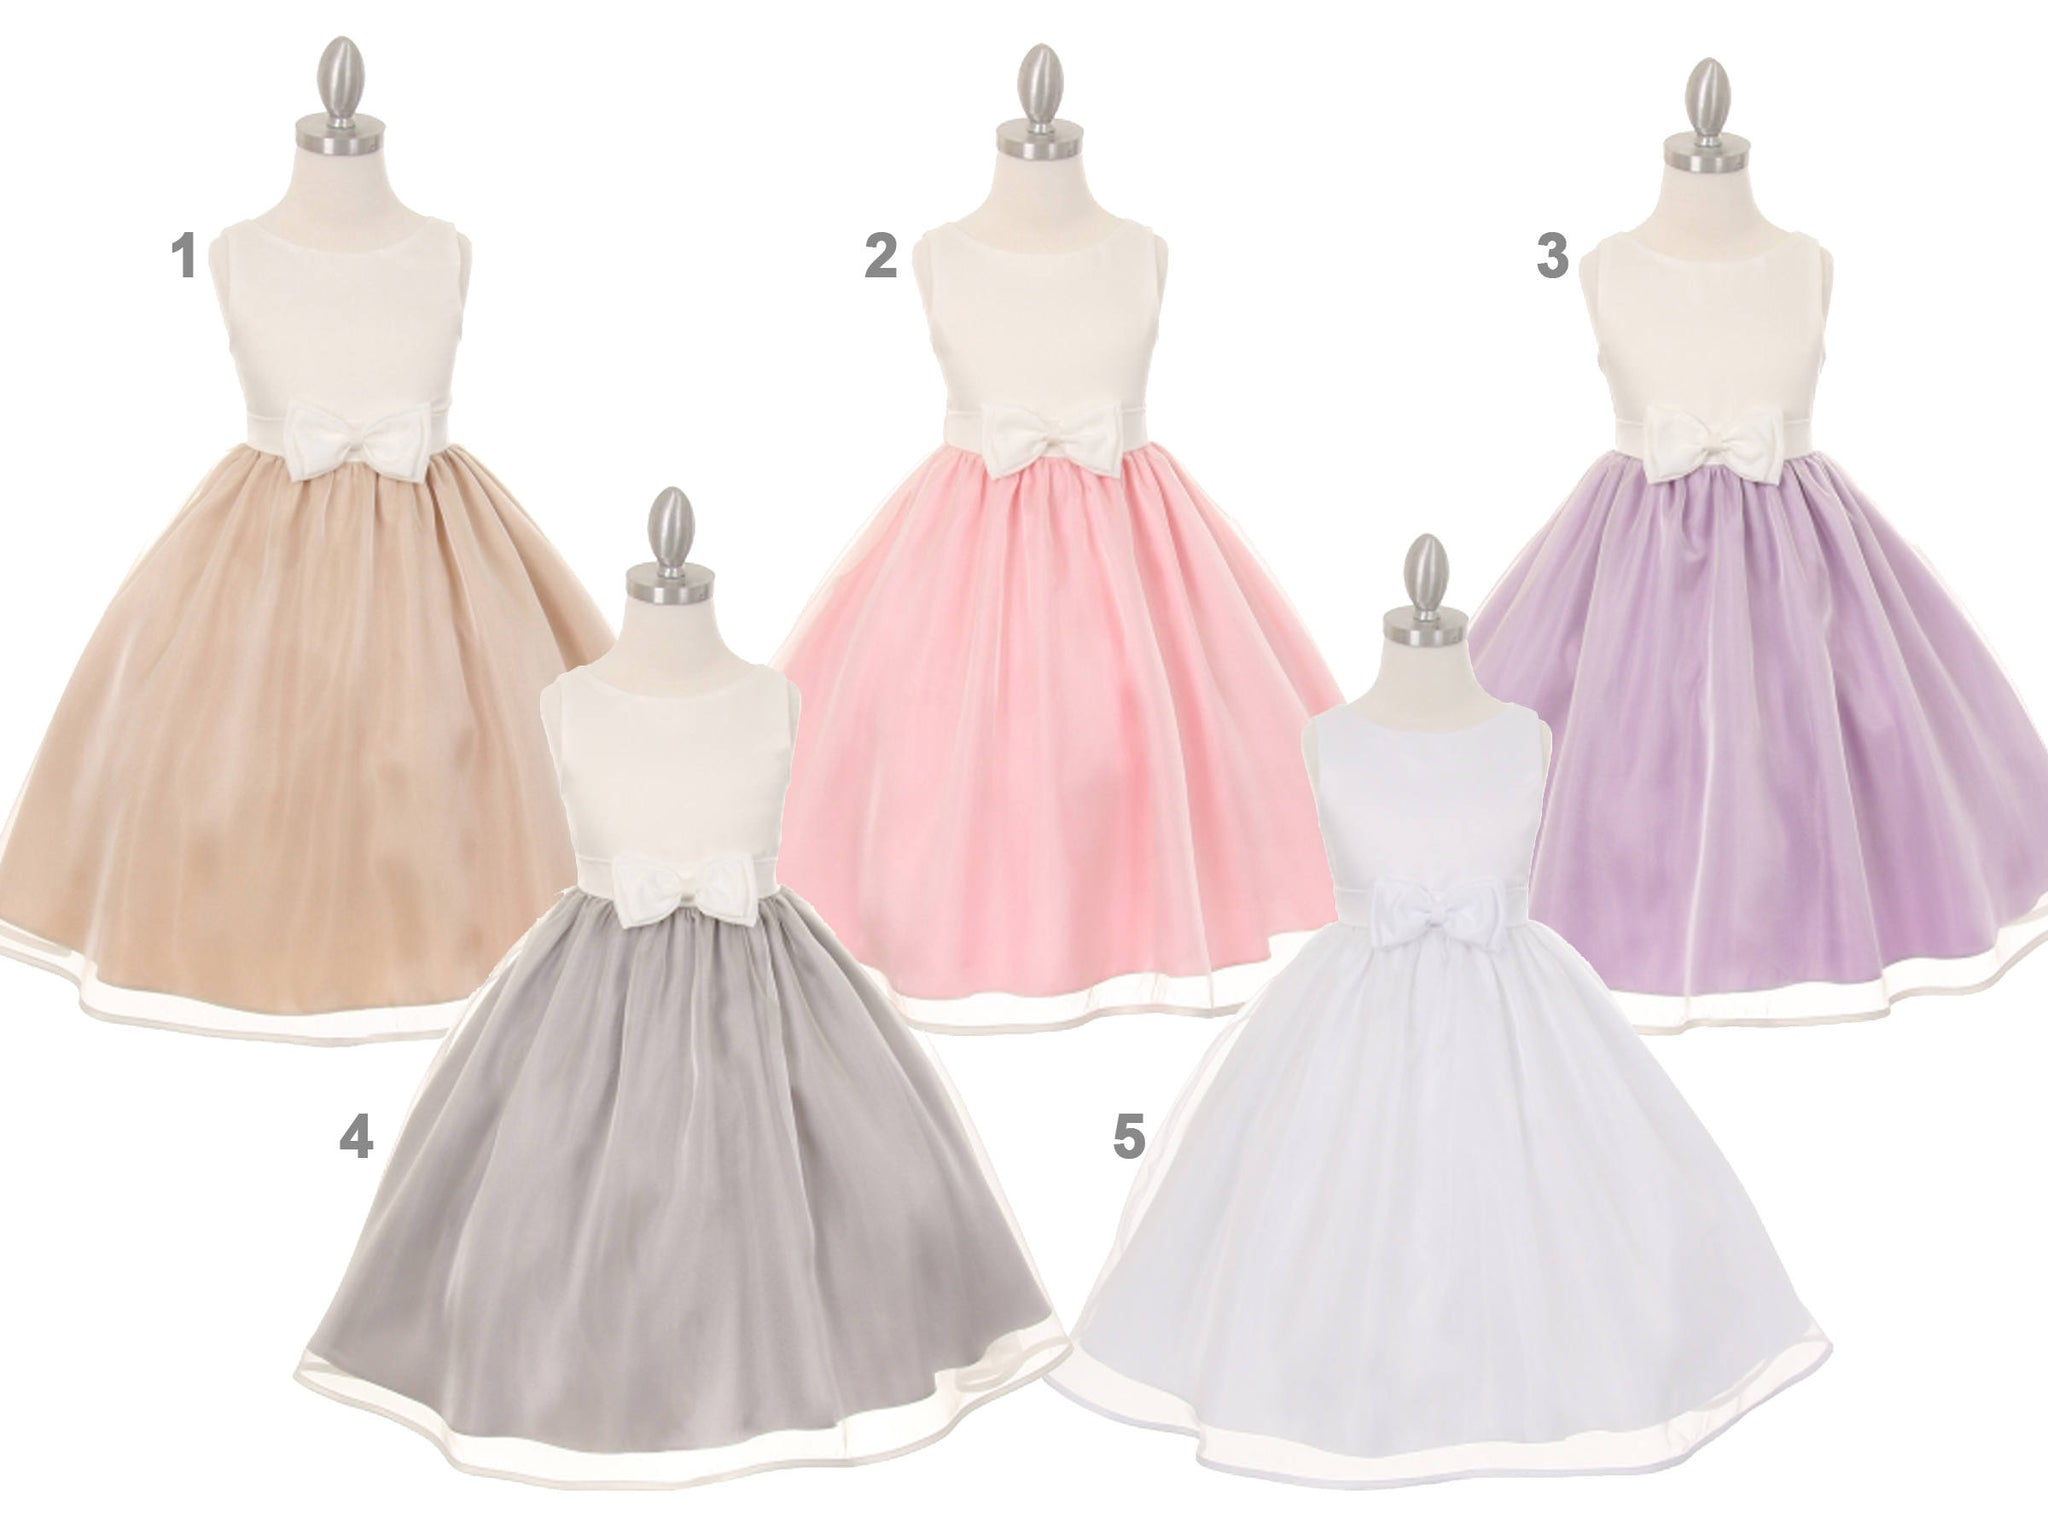 286729d01b9f Baby Toddler to Girl Satin Organza Dress, Wedding Flower Girl Baptism  Communion Christening, White